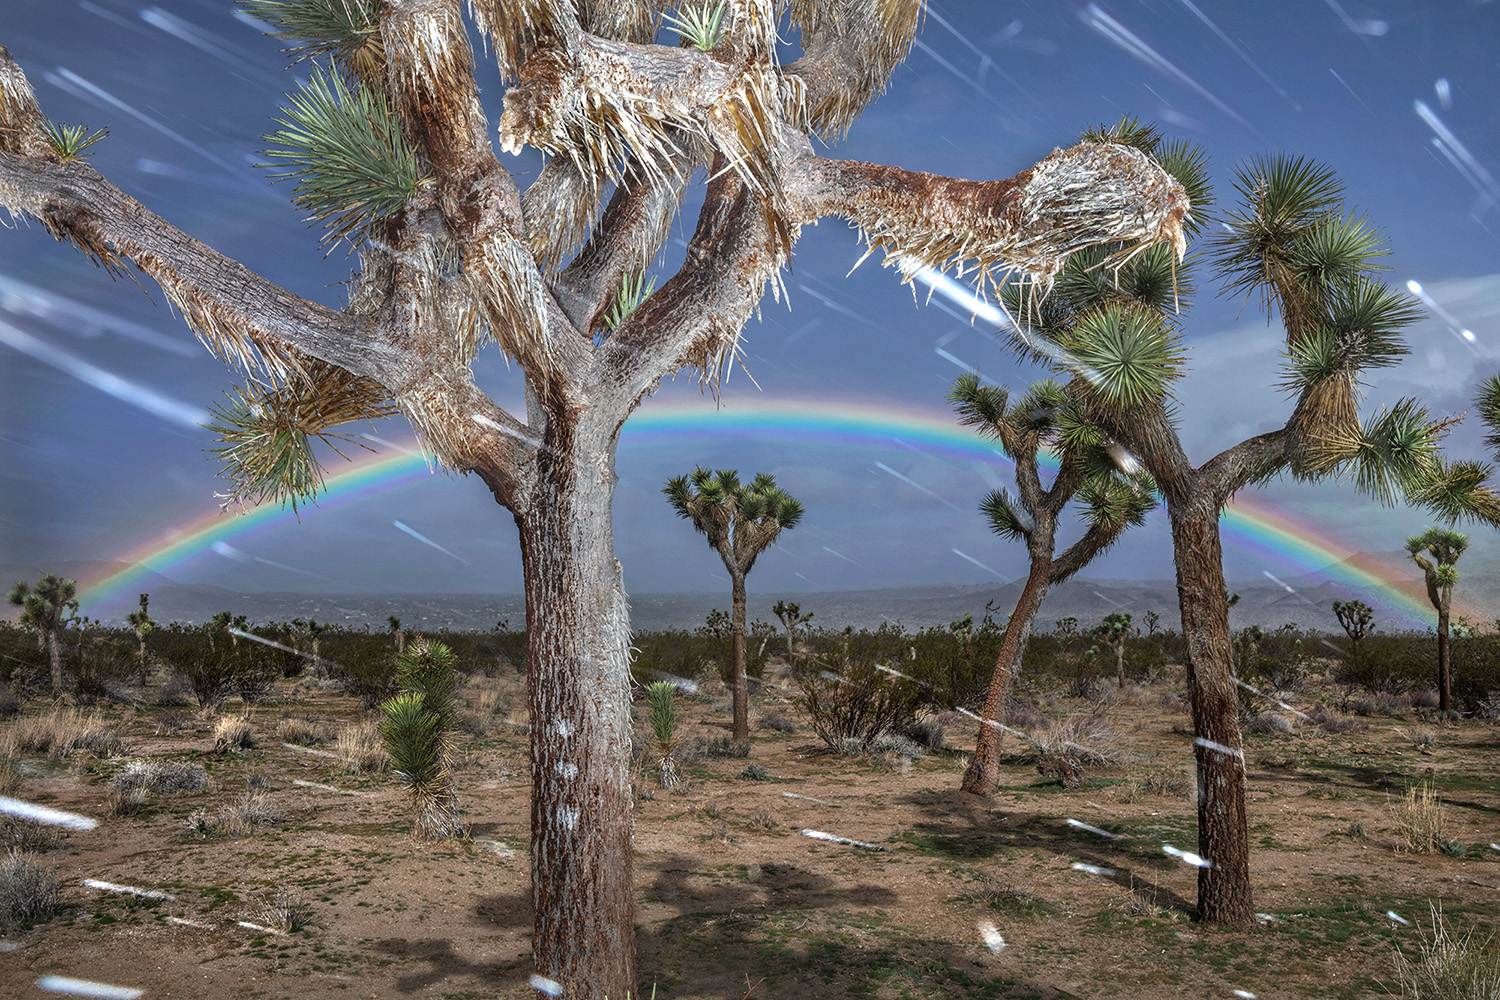 THOMAS ALLEMAN OTHER DESERT CITIES, 2018  ARCHIVAL PIGMENT PRINT